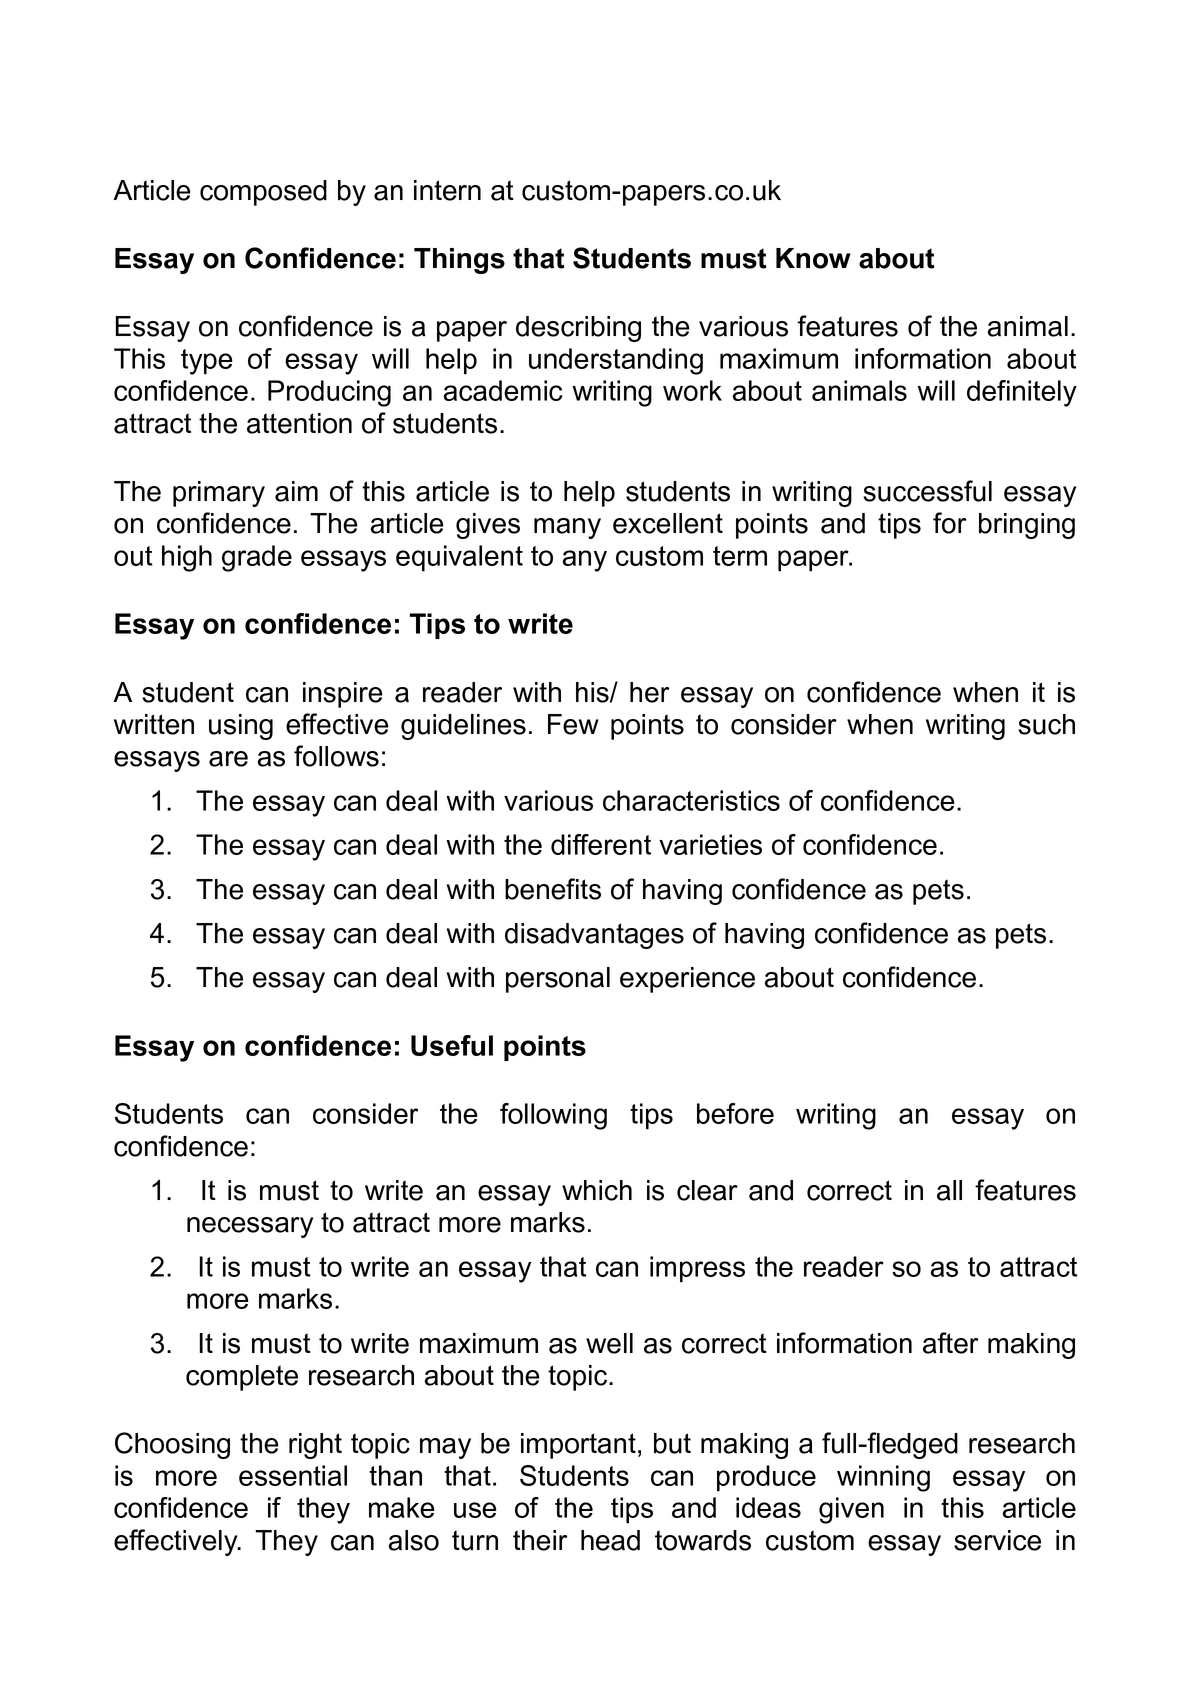 Proposal Essay Topics List  Cheap Copy Writing Services also Example Of Thesis Statement For Argumentative Essay Calamo  Essay On Confidence Things That Students Must Know About Thesis For A Persuasive Essay